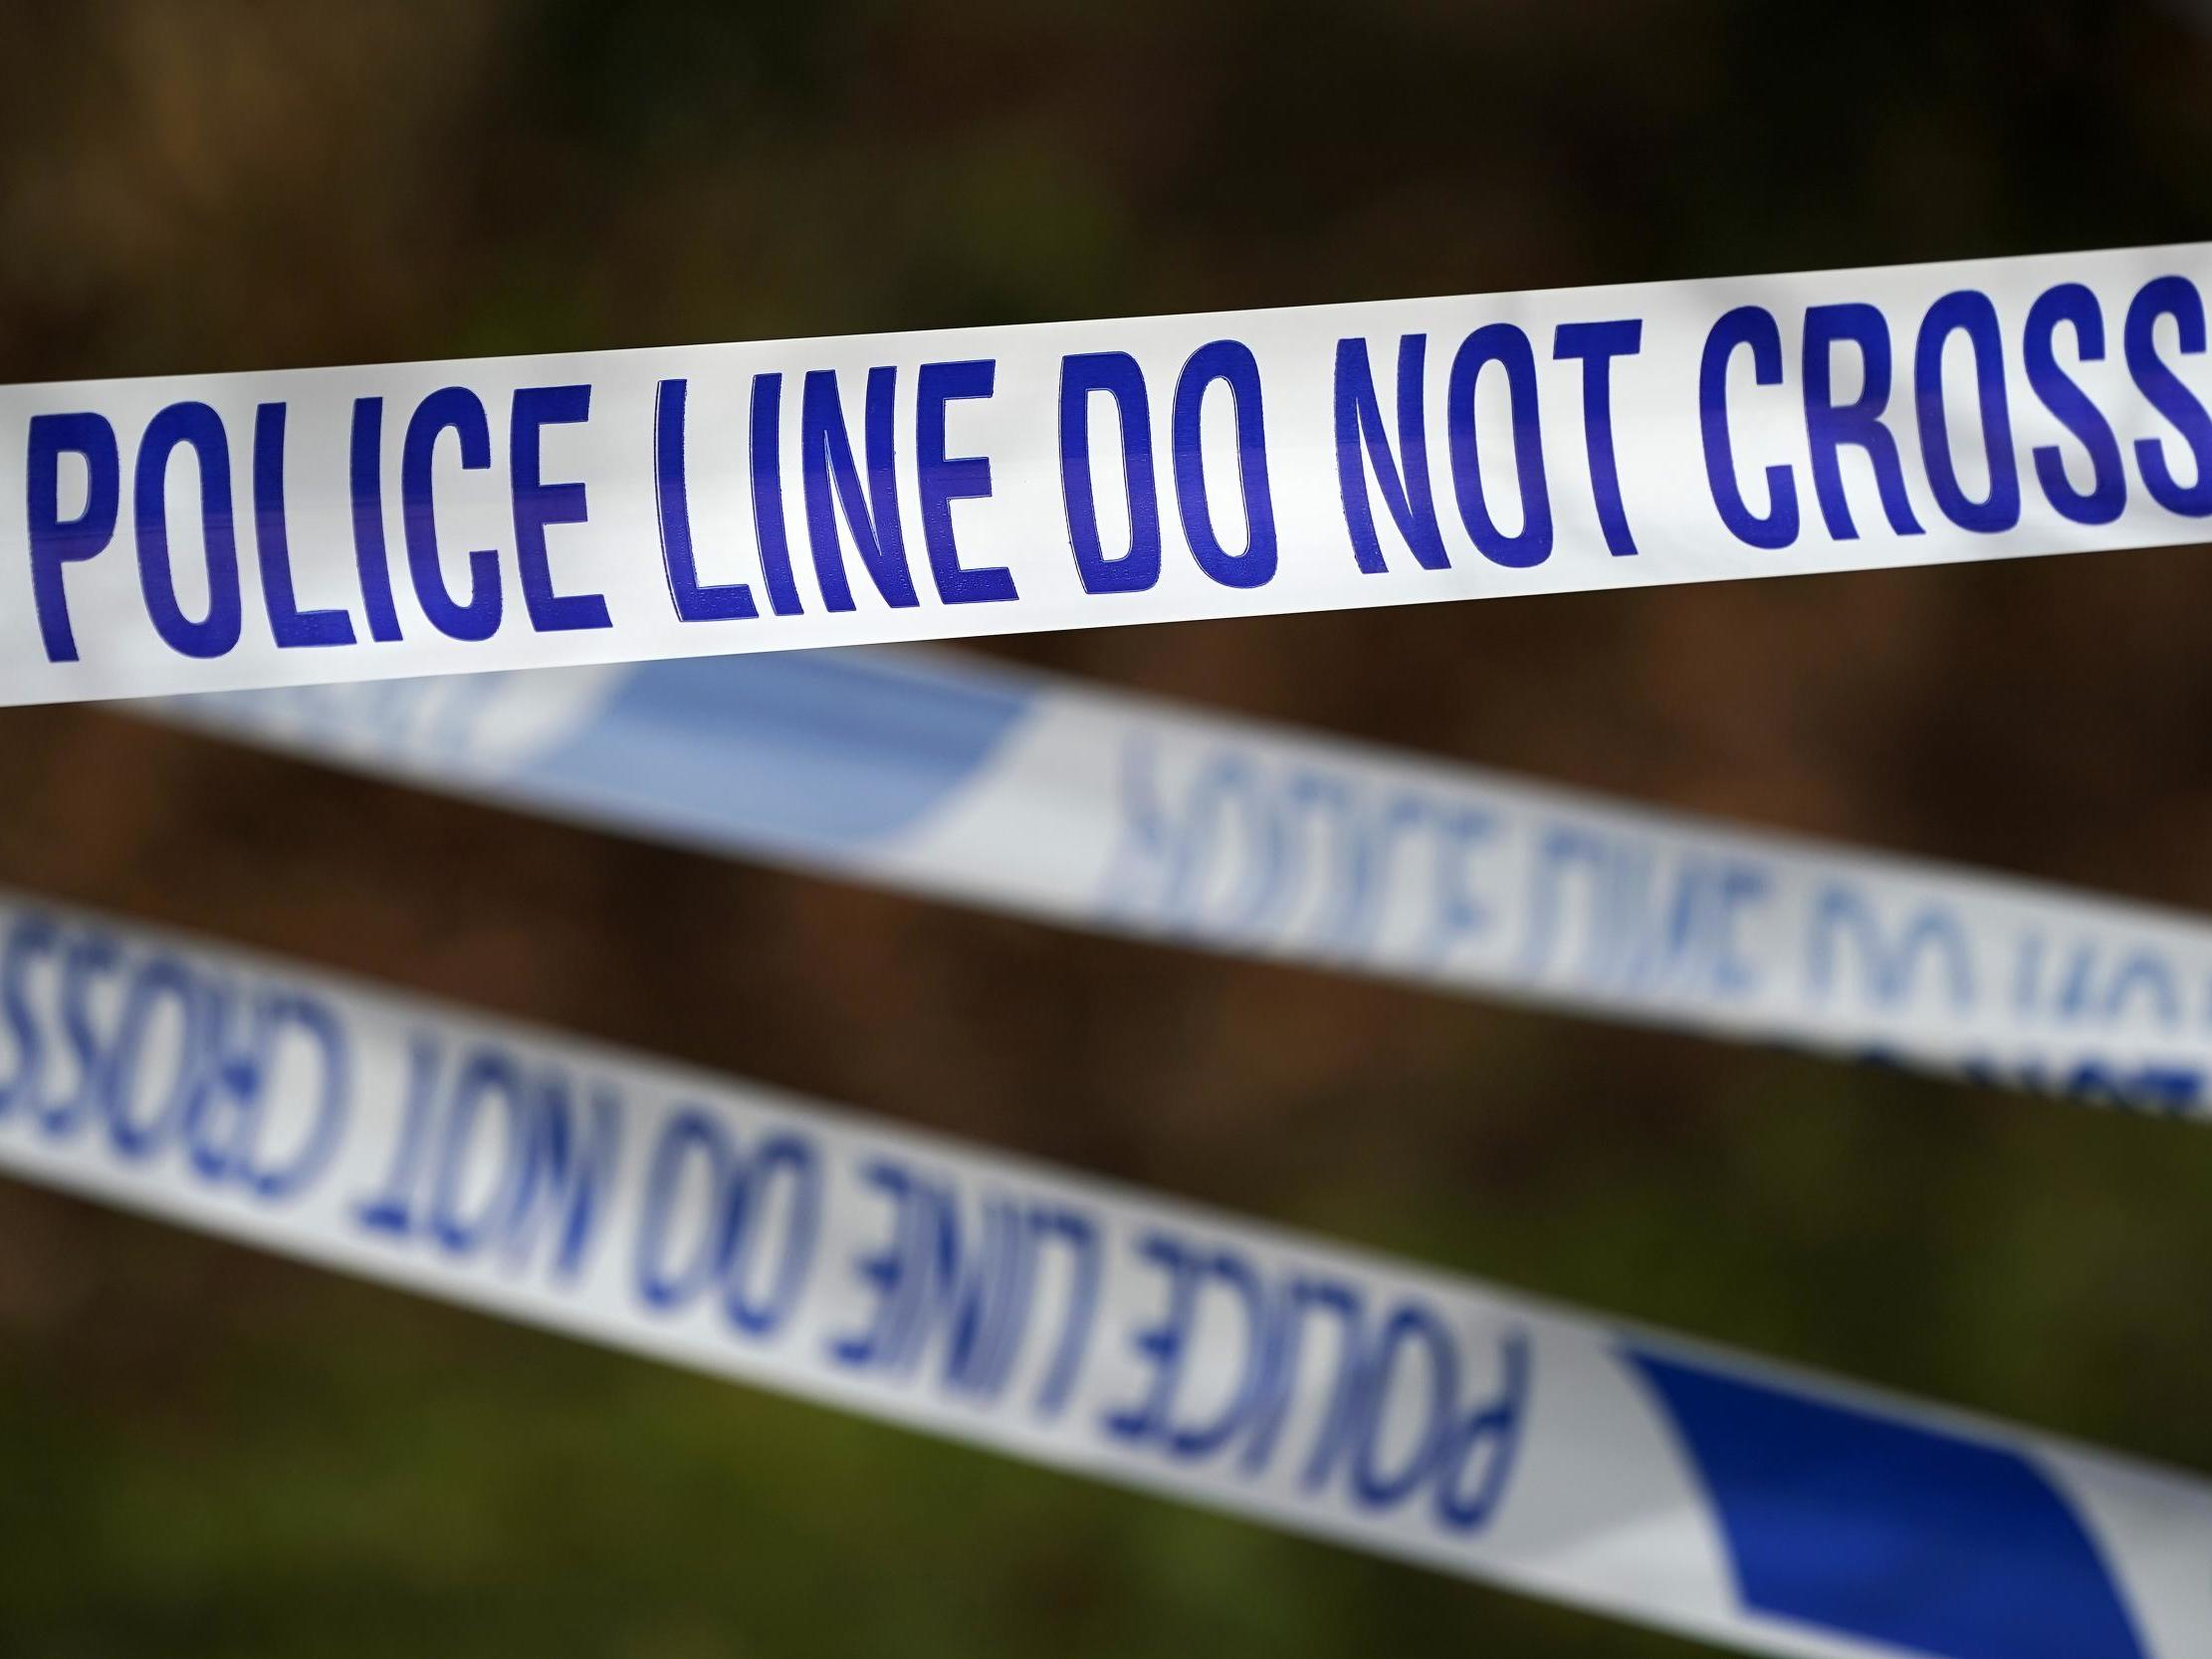 Man shot in 'paramilitary-style' attack while son was at home